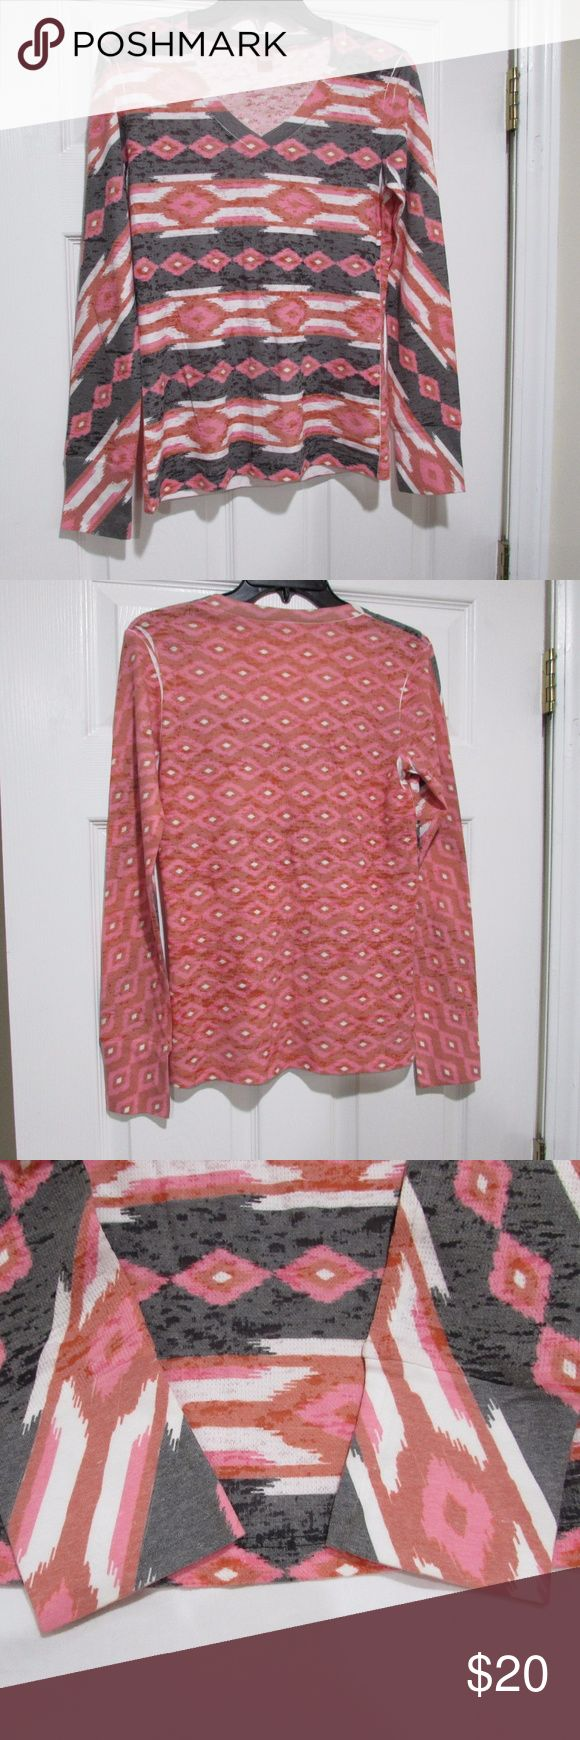 """🌟NWOT🌟 Before + Again Southwest/Aztec Thermal This long-sleeve V-neck tee comes in a print reminiscent of a southwest blanket.   New without tags. Never worn.   Printed via sublimation printing. White areas known as """"sublimation smiles"""" are a normal part of the manufacturing process and are typically found at the armpit.  Size XS Across, armpit to armpit: ~16"""" Across, at waist: ~15.25"""" Across, at bottom hem: ~17"""" Length, vertically down center of shirt: ~23.5""""  Lightweight thermal…"""